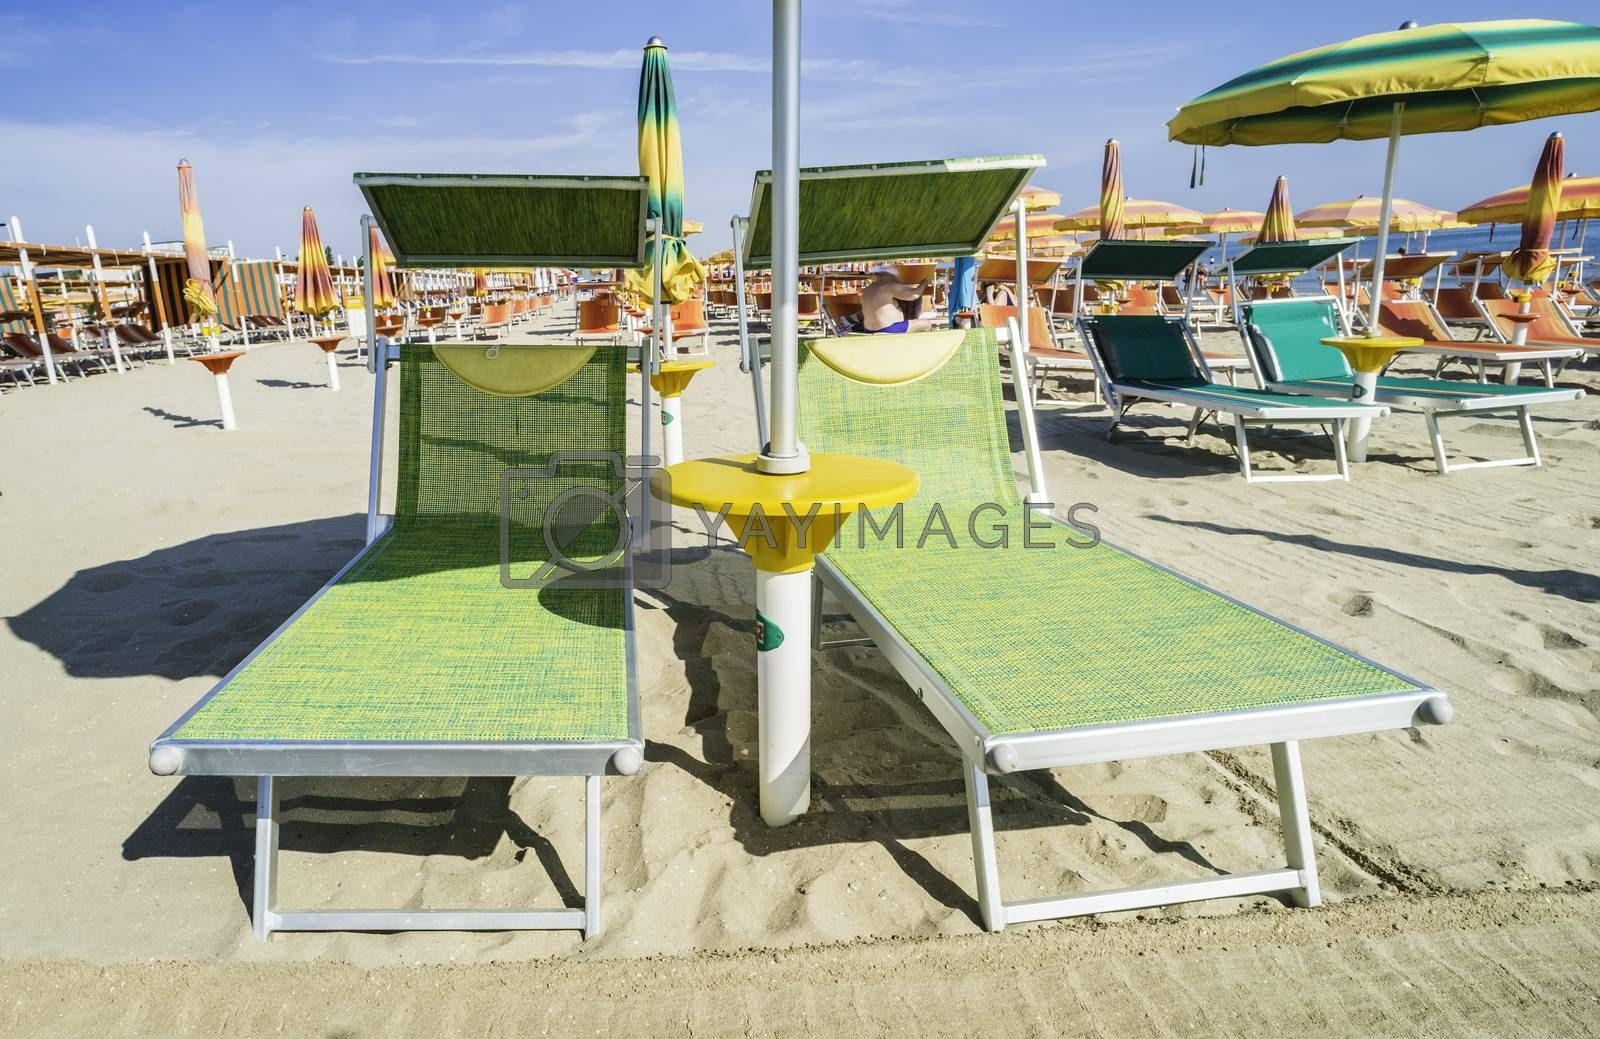 Green sunbeds and umbrellas on the beach.